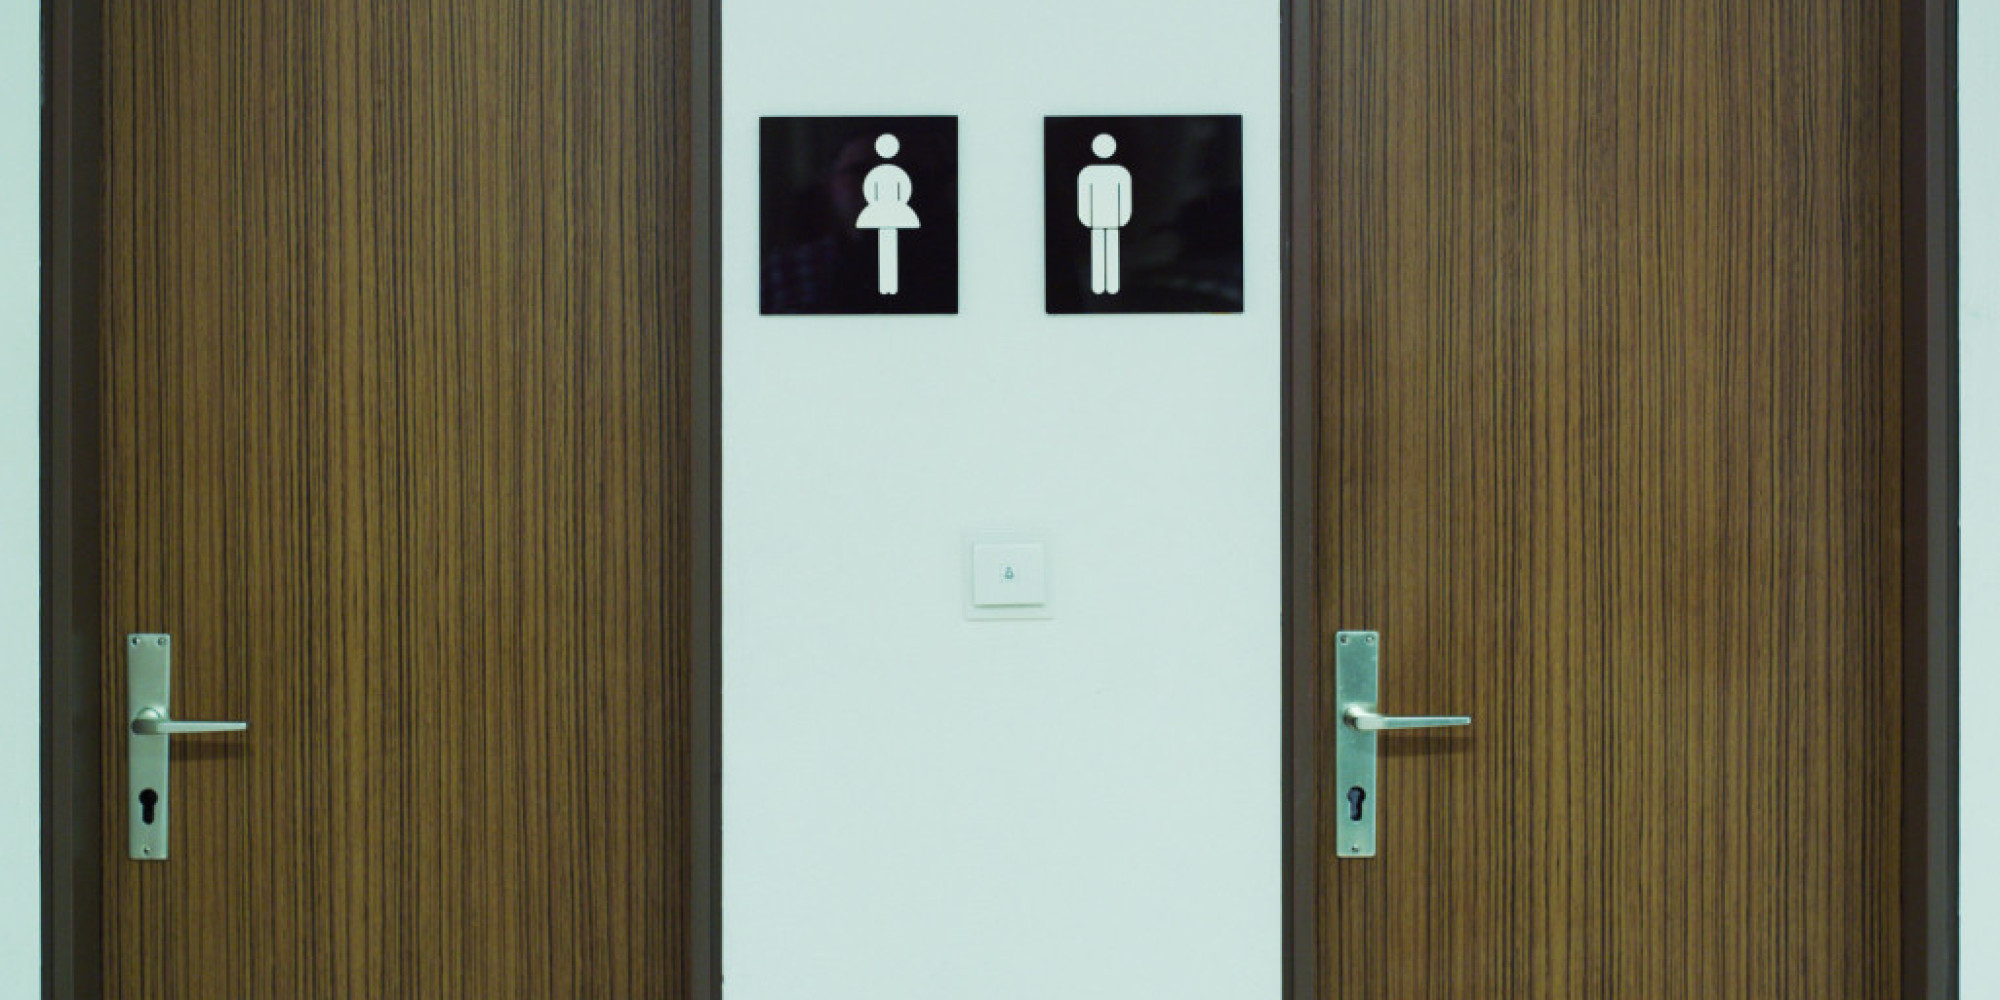 School Bathroom Door school bathroom habits impact life-long bladder health: opening